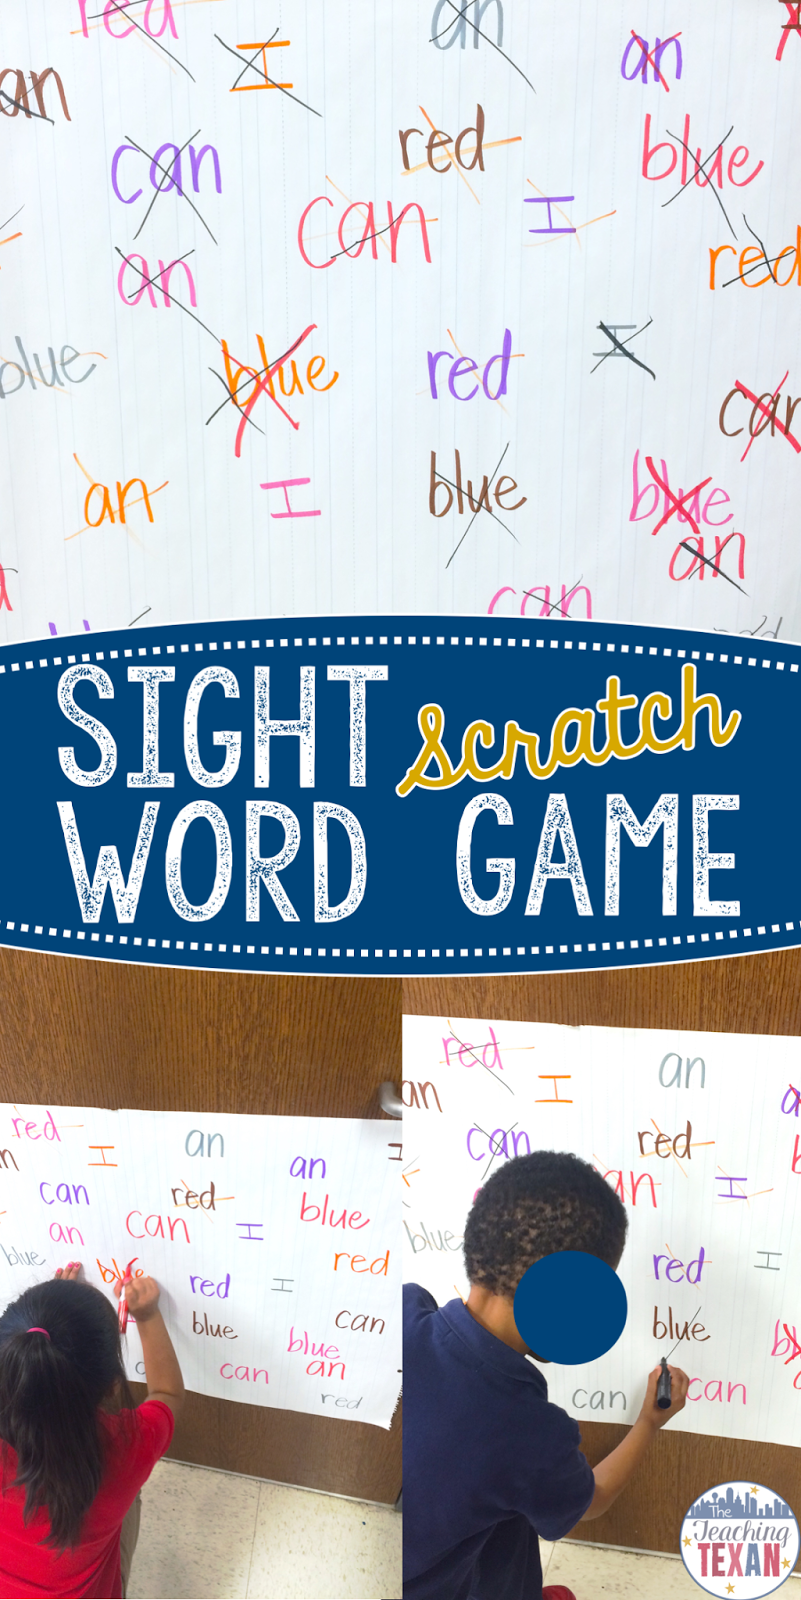 Sight words are an important building block in learning